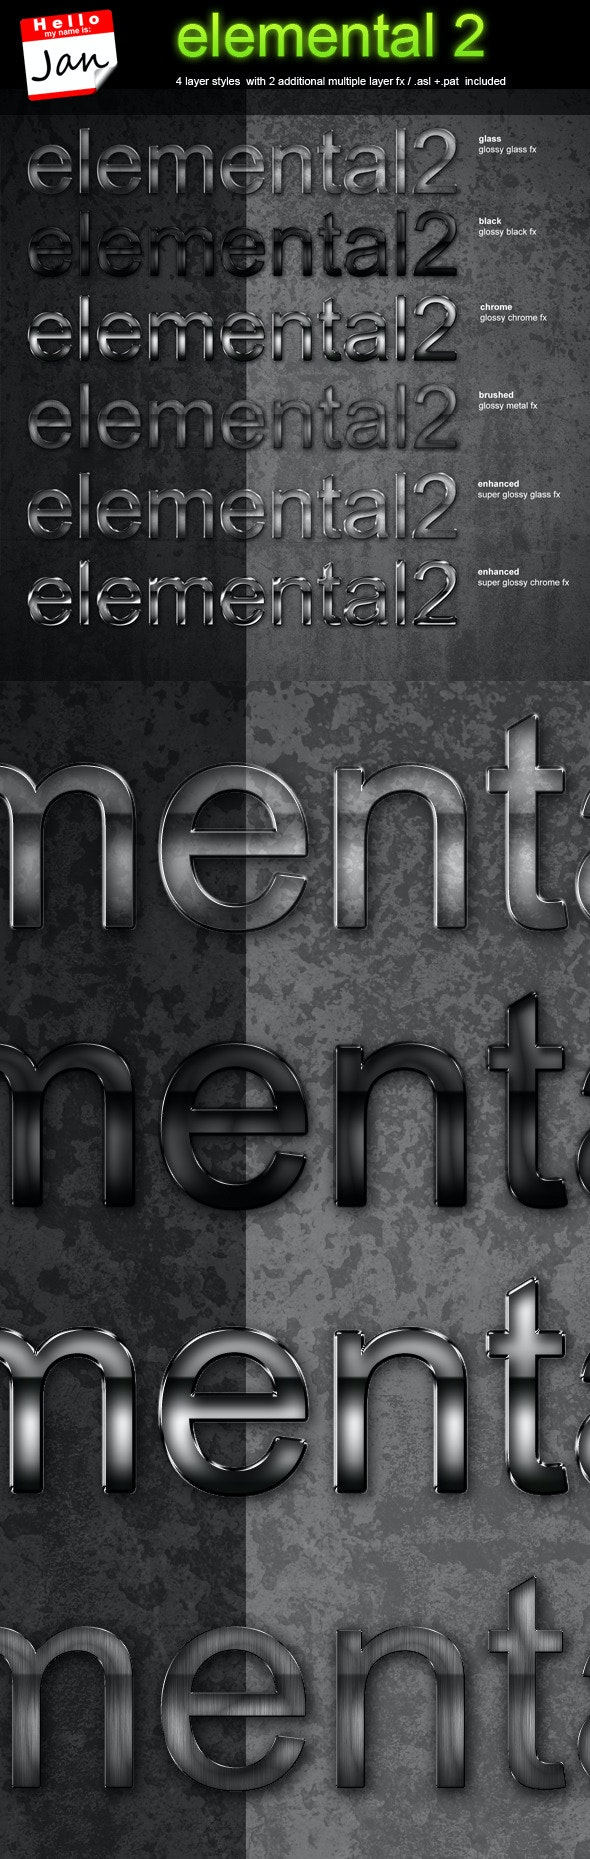 elemental 2 - professional styling package - Text Effects Styles